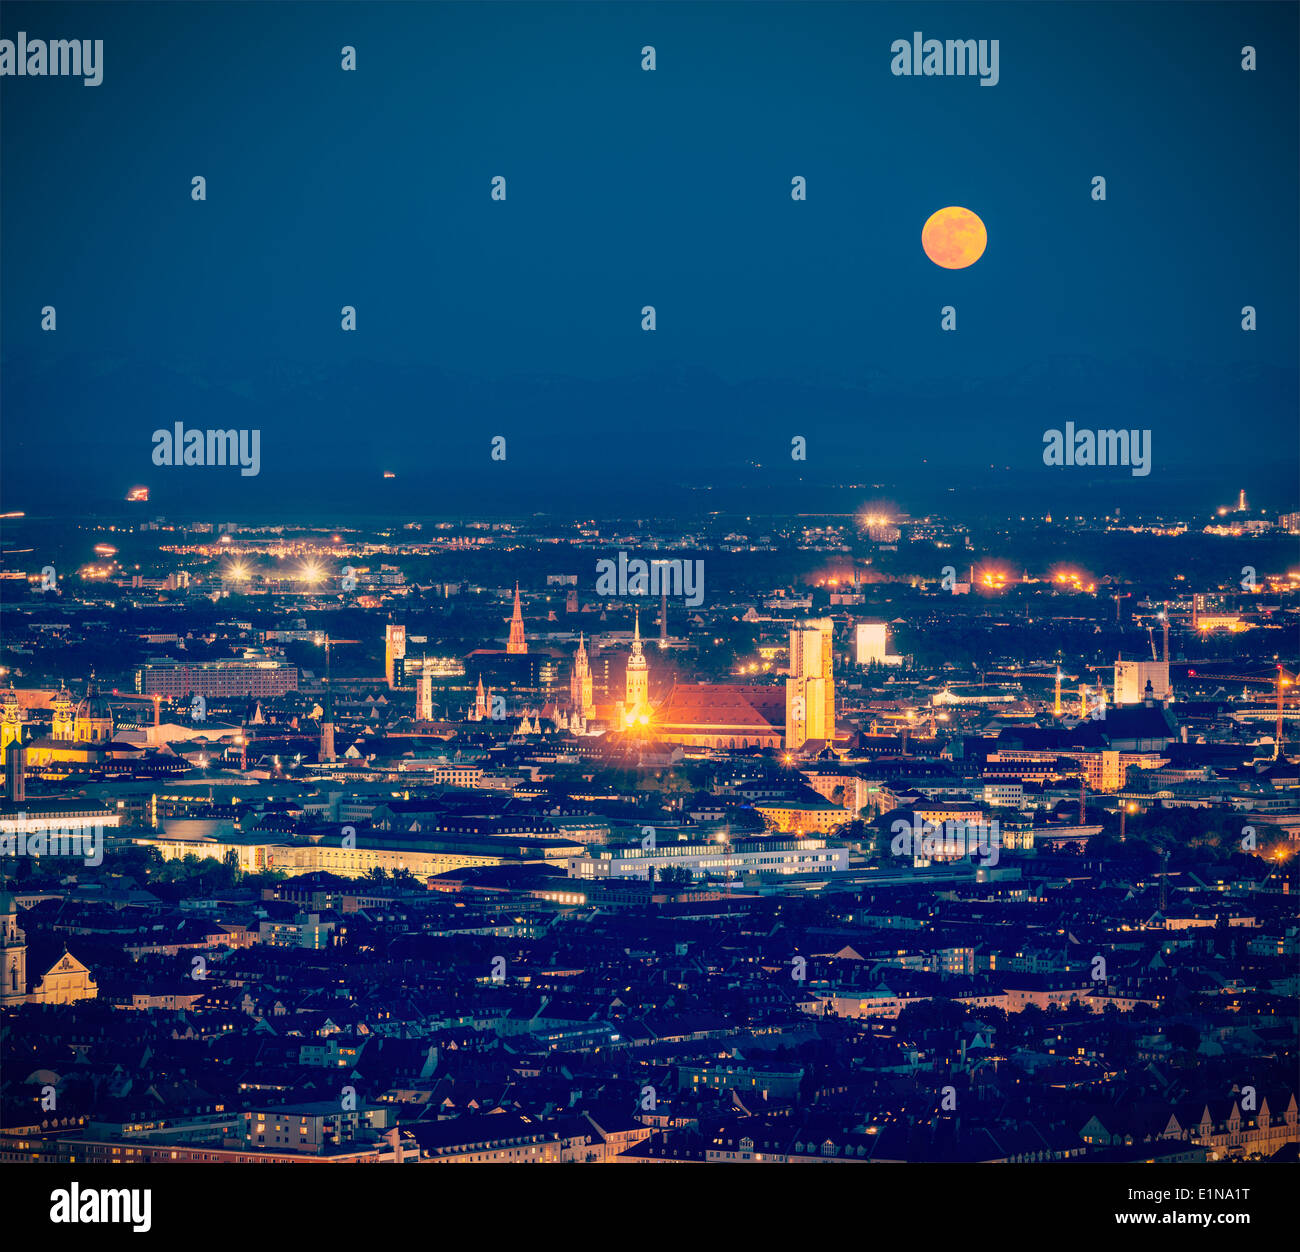 Vintage retro hipster style travel image of night aerial view of Munich from Olympiaturm (Olympic Tower). Munich, Germany - Stock Image